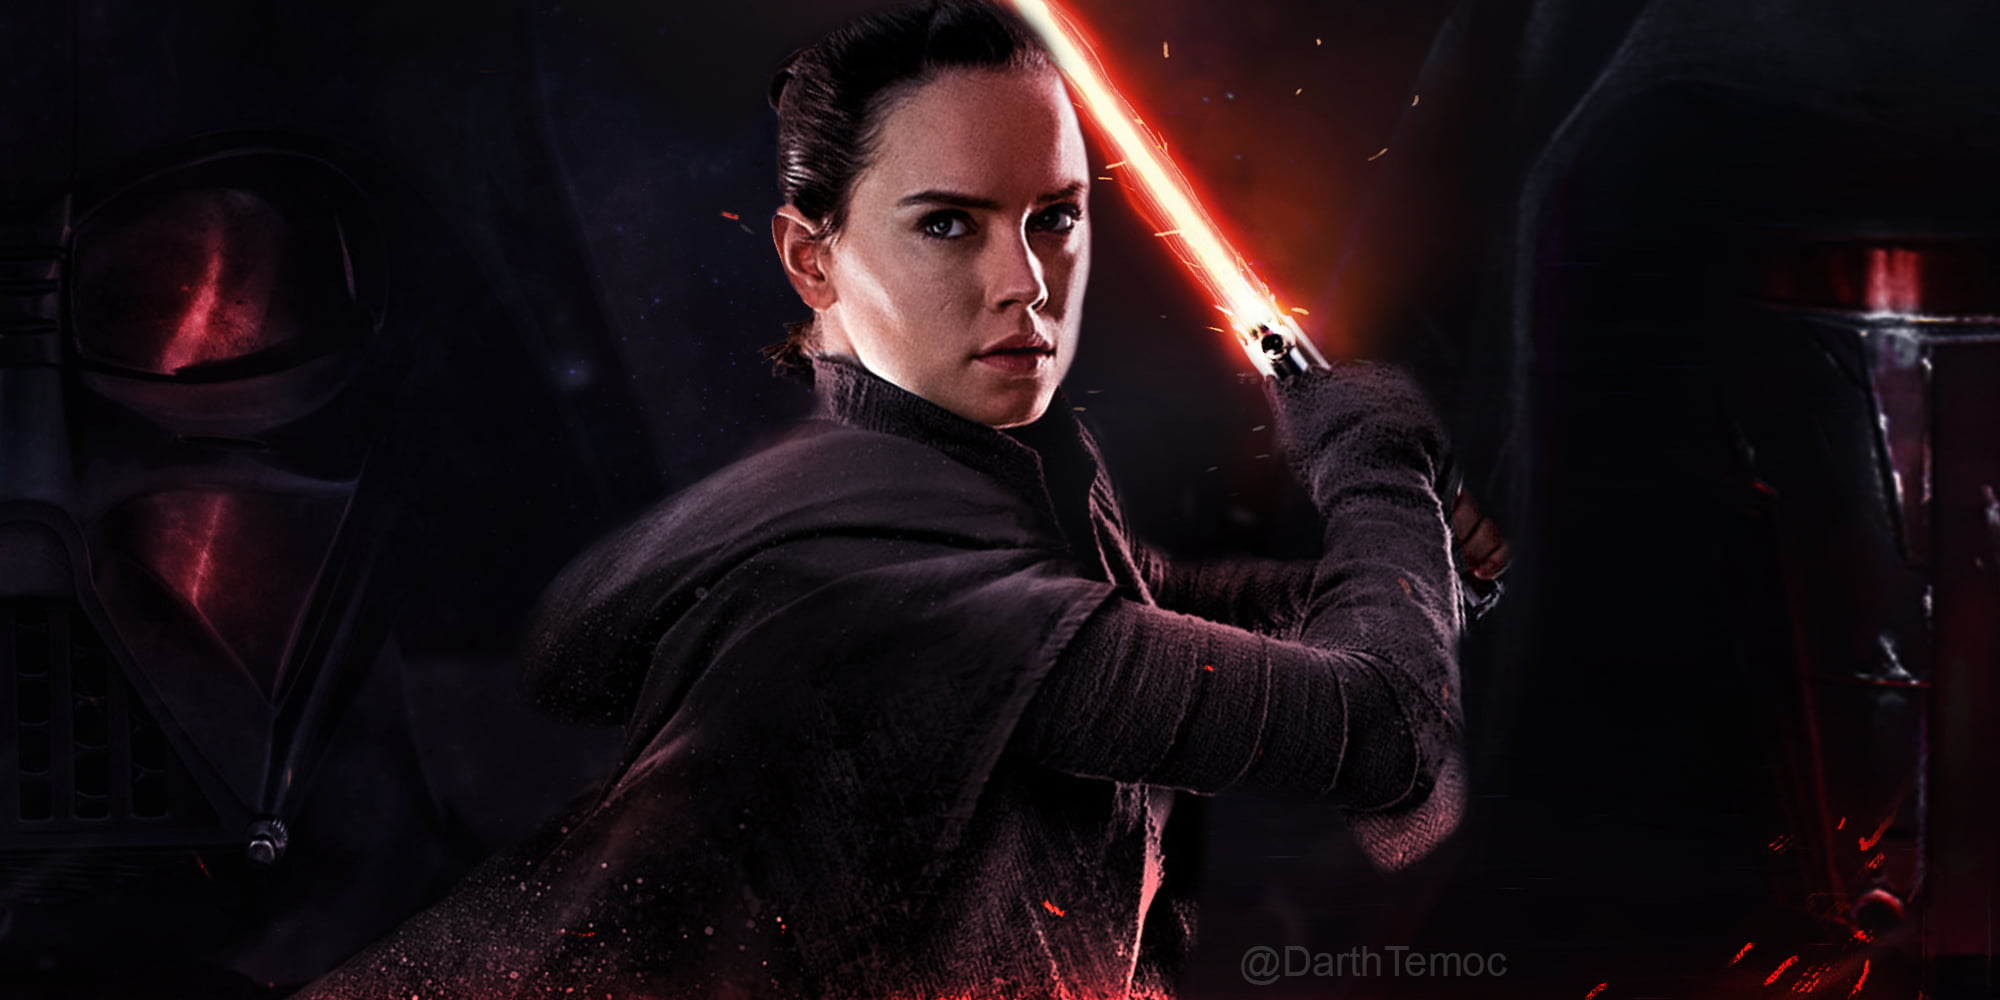 Star Wars character wallpaper, Star Wars The Last Jedi, Rey